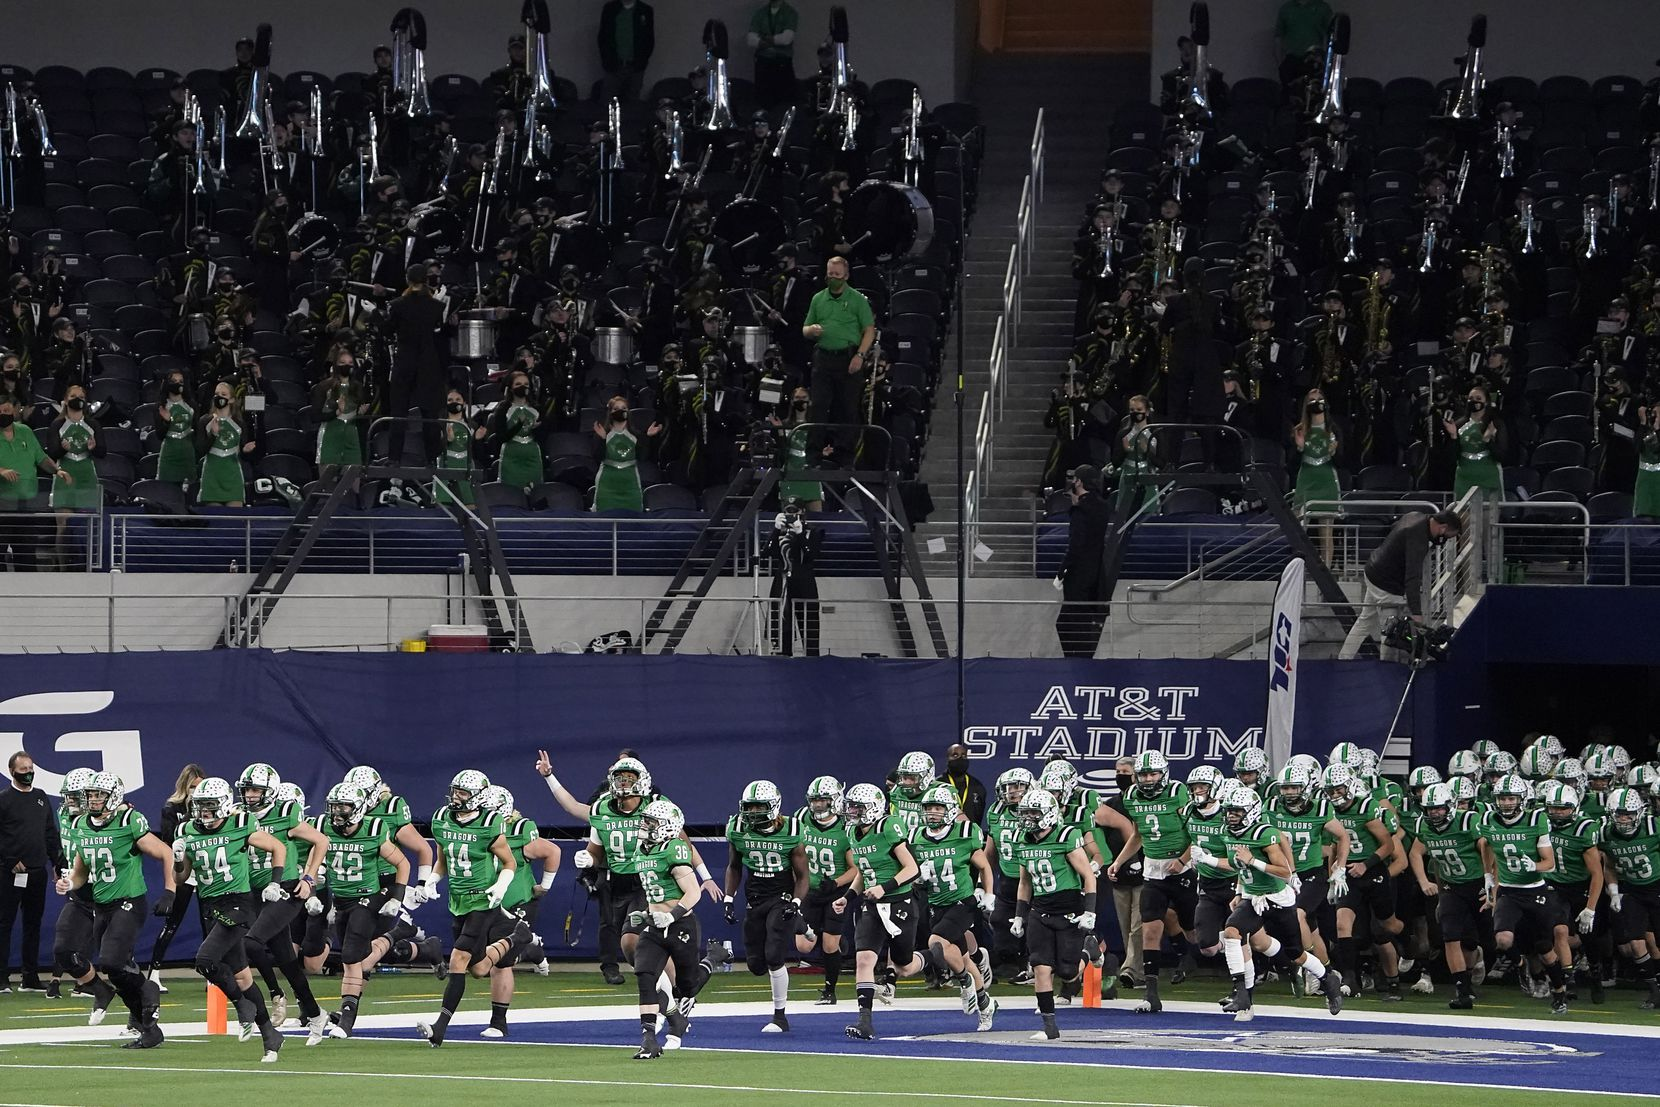 The Southlake Carroll Dragons take the field to face Austin Westlake in the Class 6A Division I state football championship game at AT&T Stadium on Saturday, Jan. 16, 2021, in Arlington, Texas.